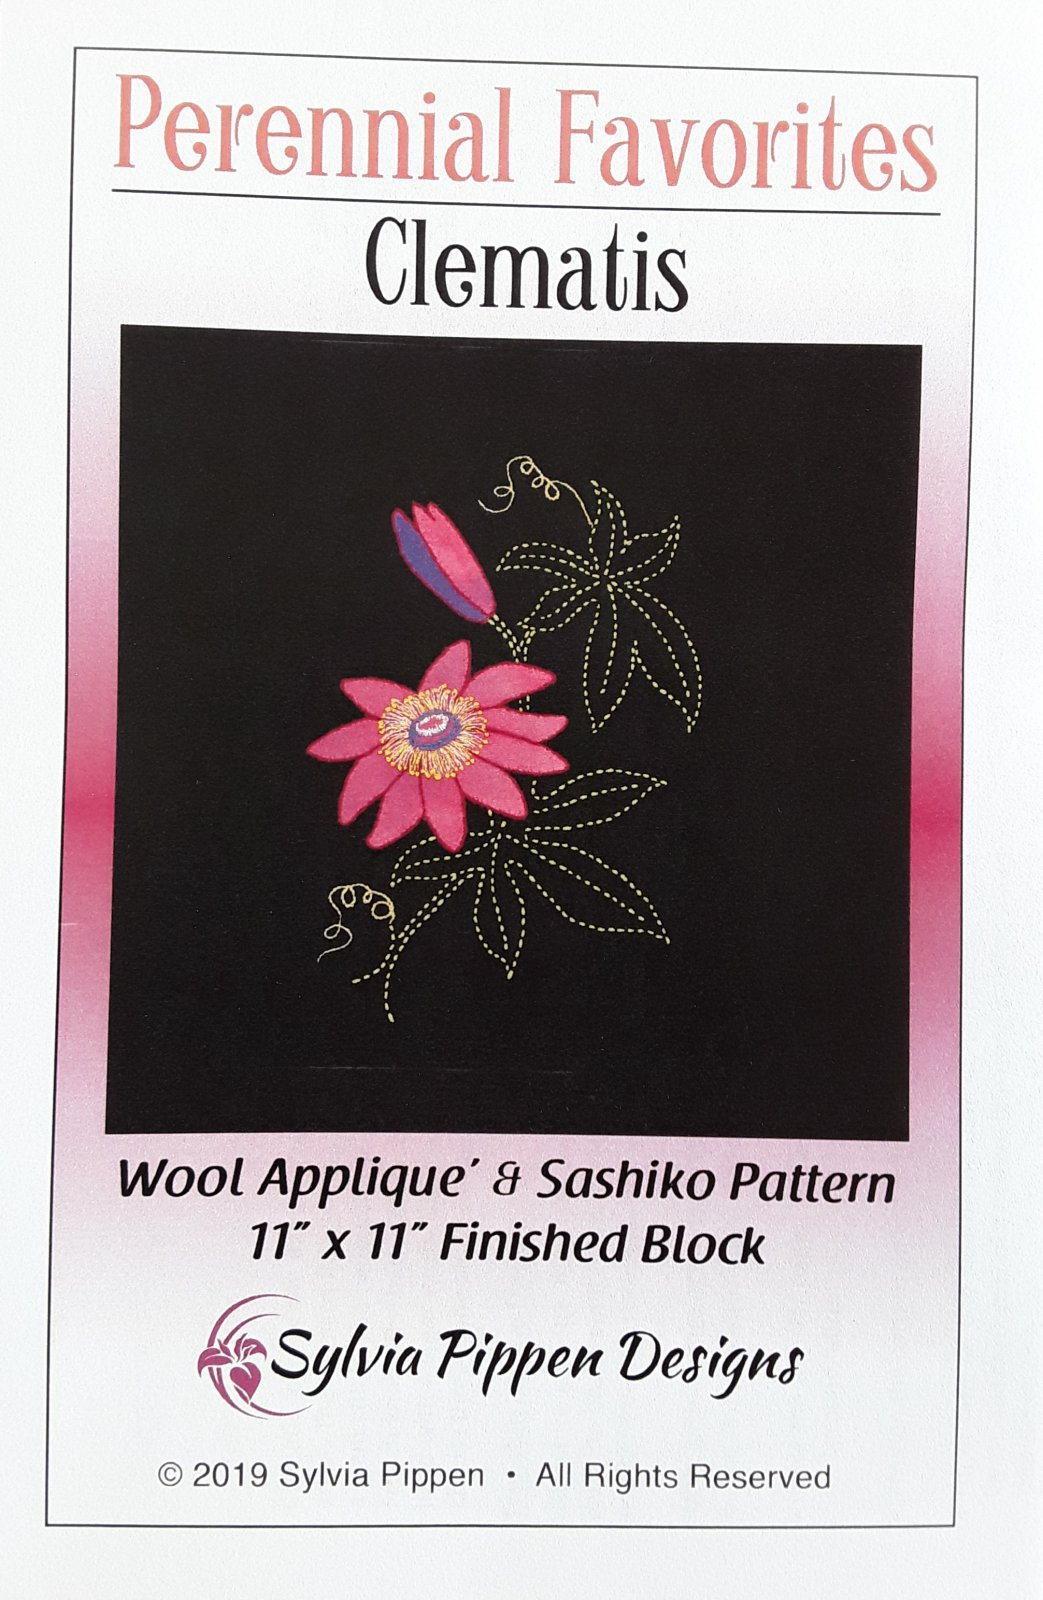 Perennial Favorites Clematis Wool Applique & Sashiko Pattern